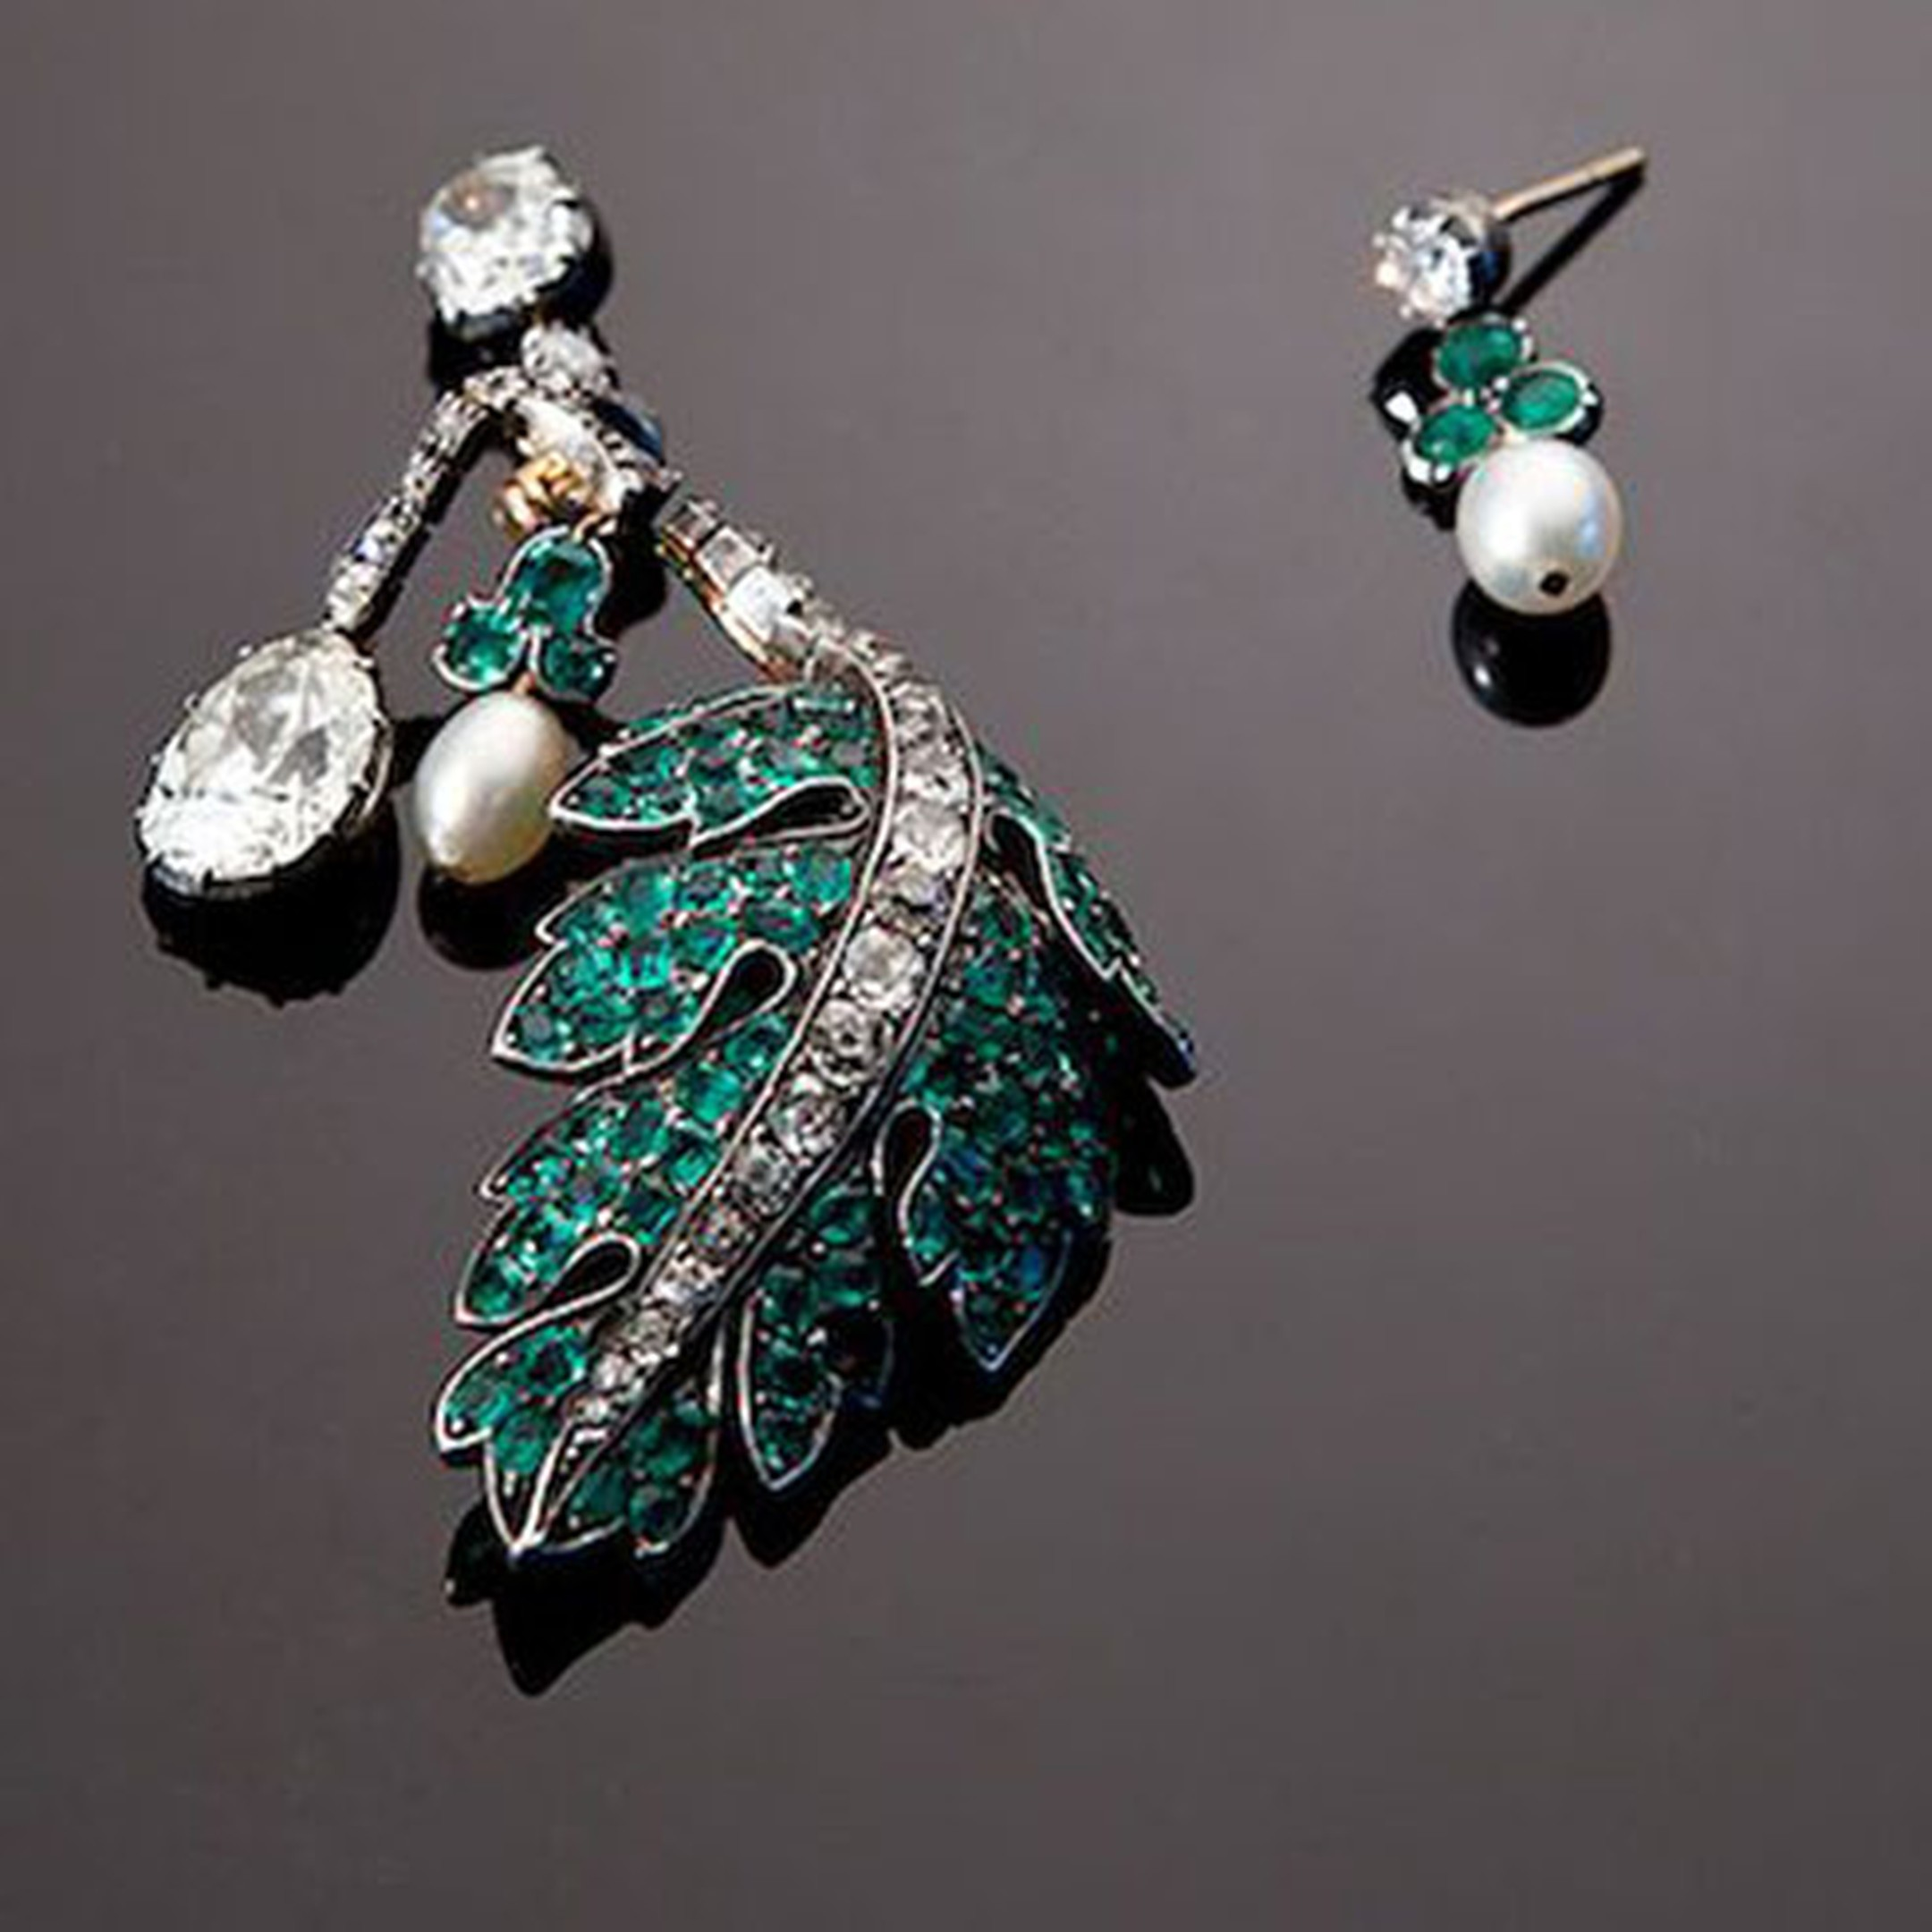 Eliane Fattal for S.J. Phillips. Oak Leaf and Acorn  jewel, c.1860 The diamond and emerald oak leaf branch with a pear shaped diamond pendant and emerald capped pearl acorn. They can be worn as a hand ornament or divided into a pair of asymmetri...